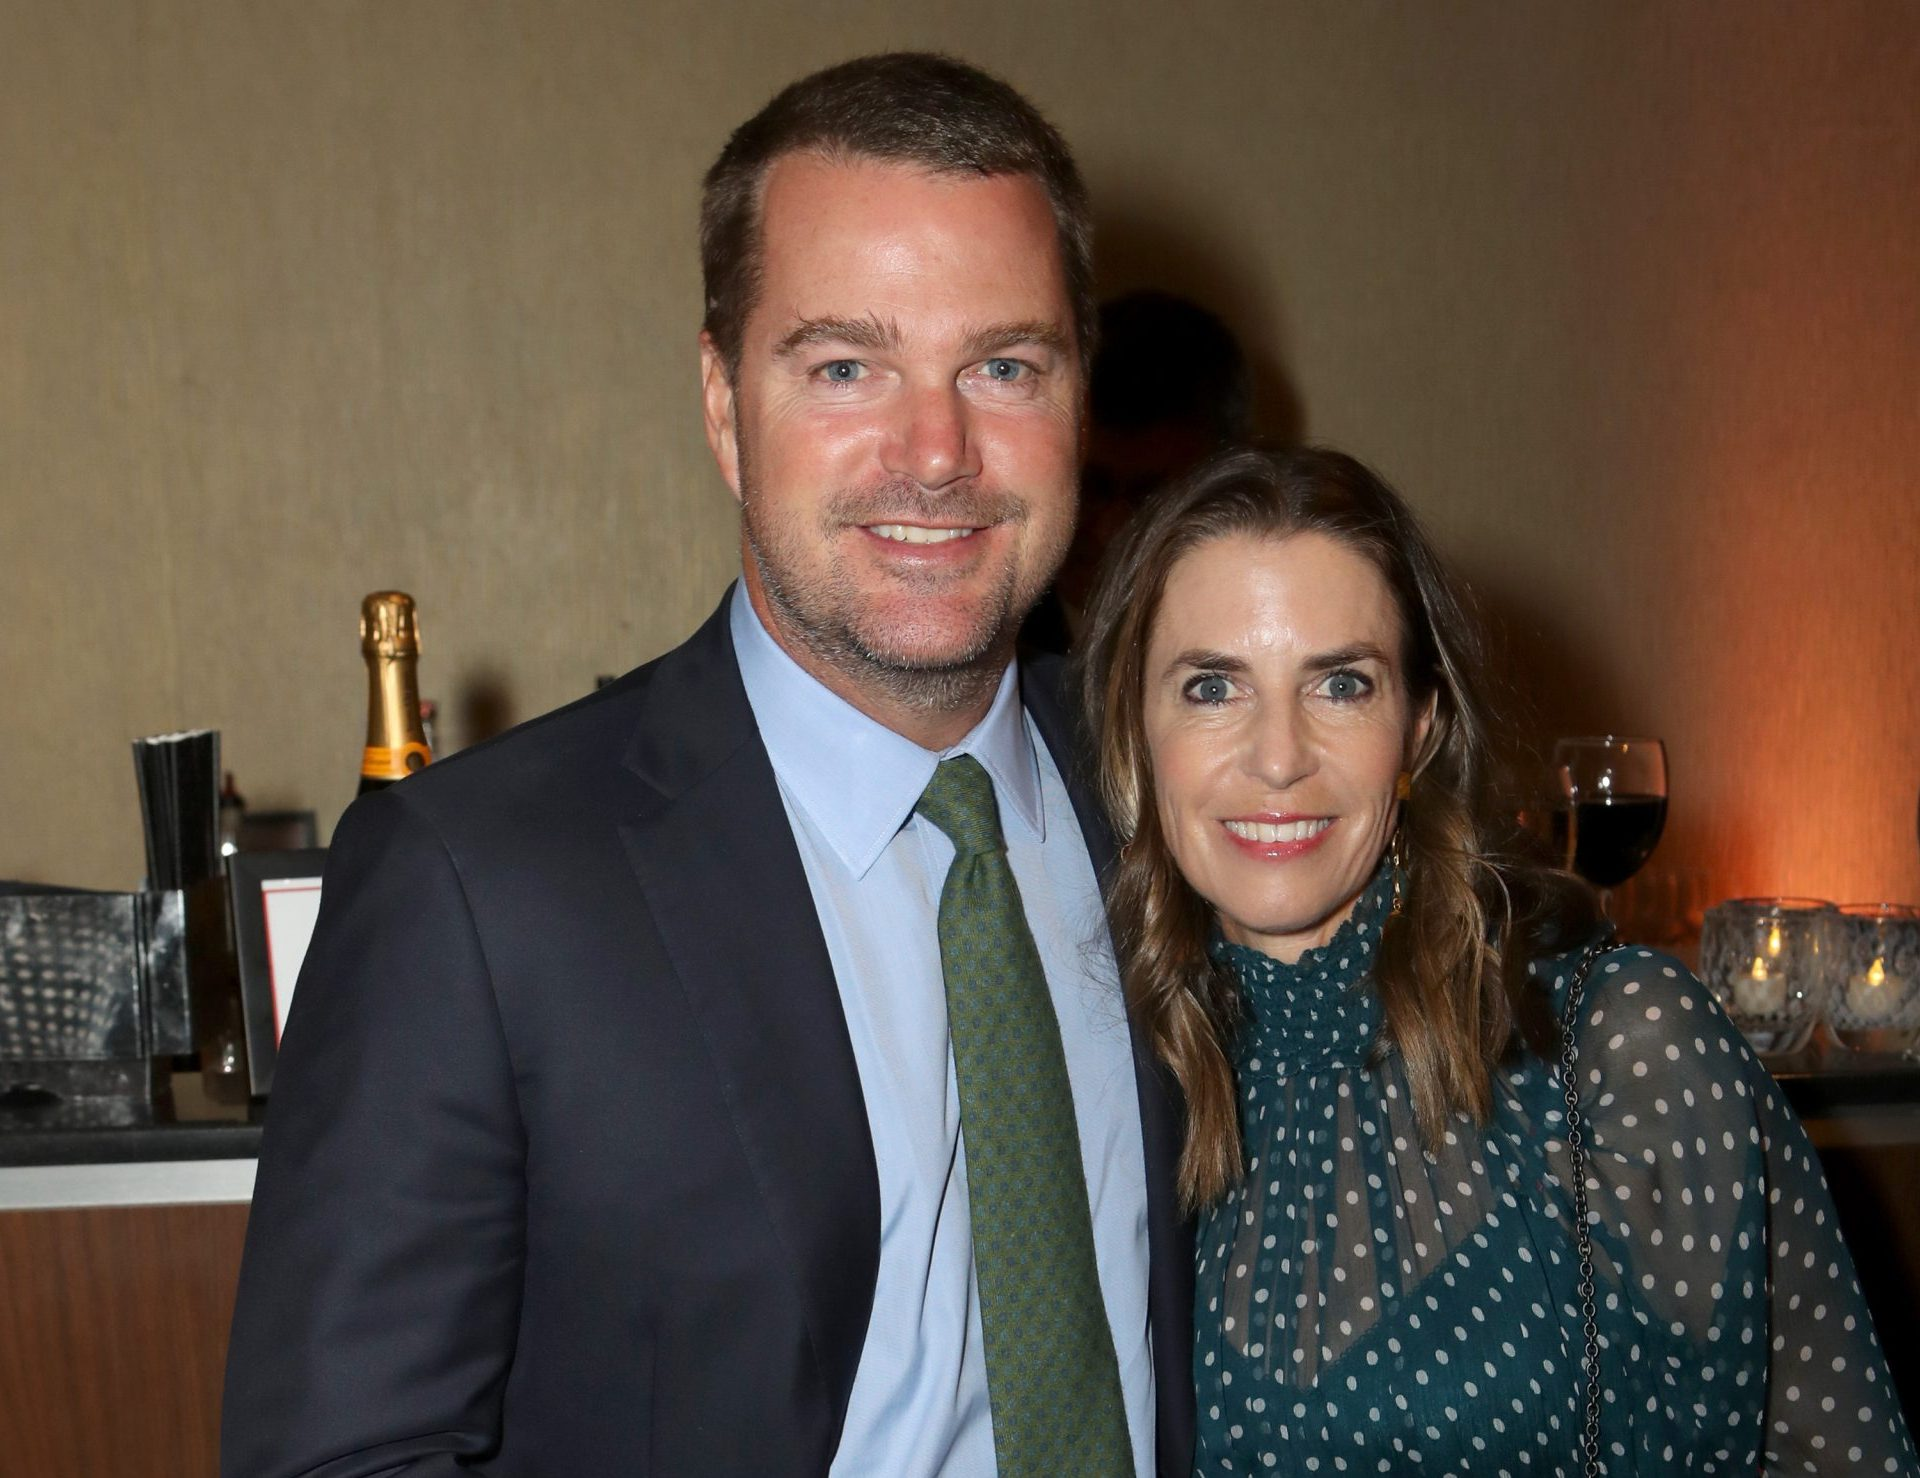 Chris O'Donnell and Caroline O'Donnell